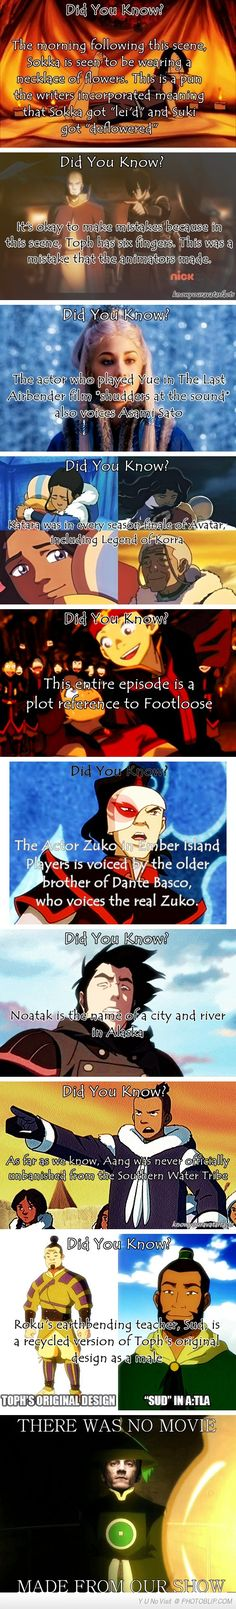 Avatar - The Last Airbender (and The Legend Of Korra) Fun Facts omg the last one!!